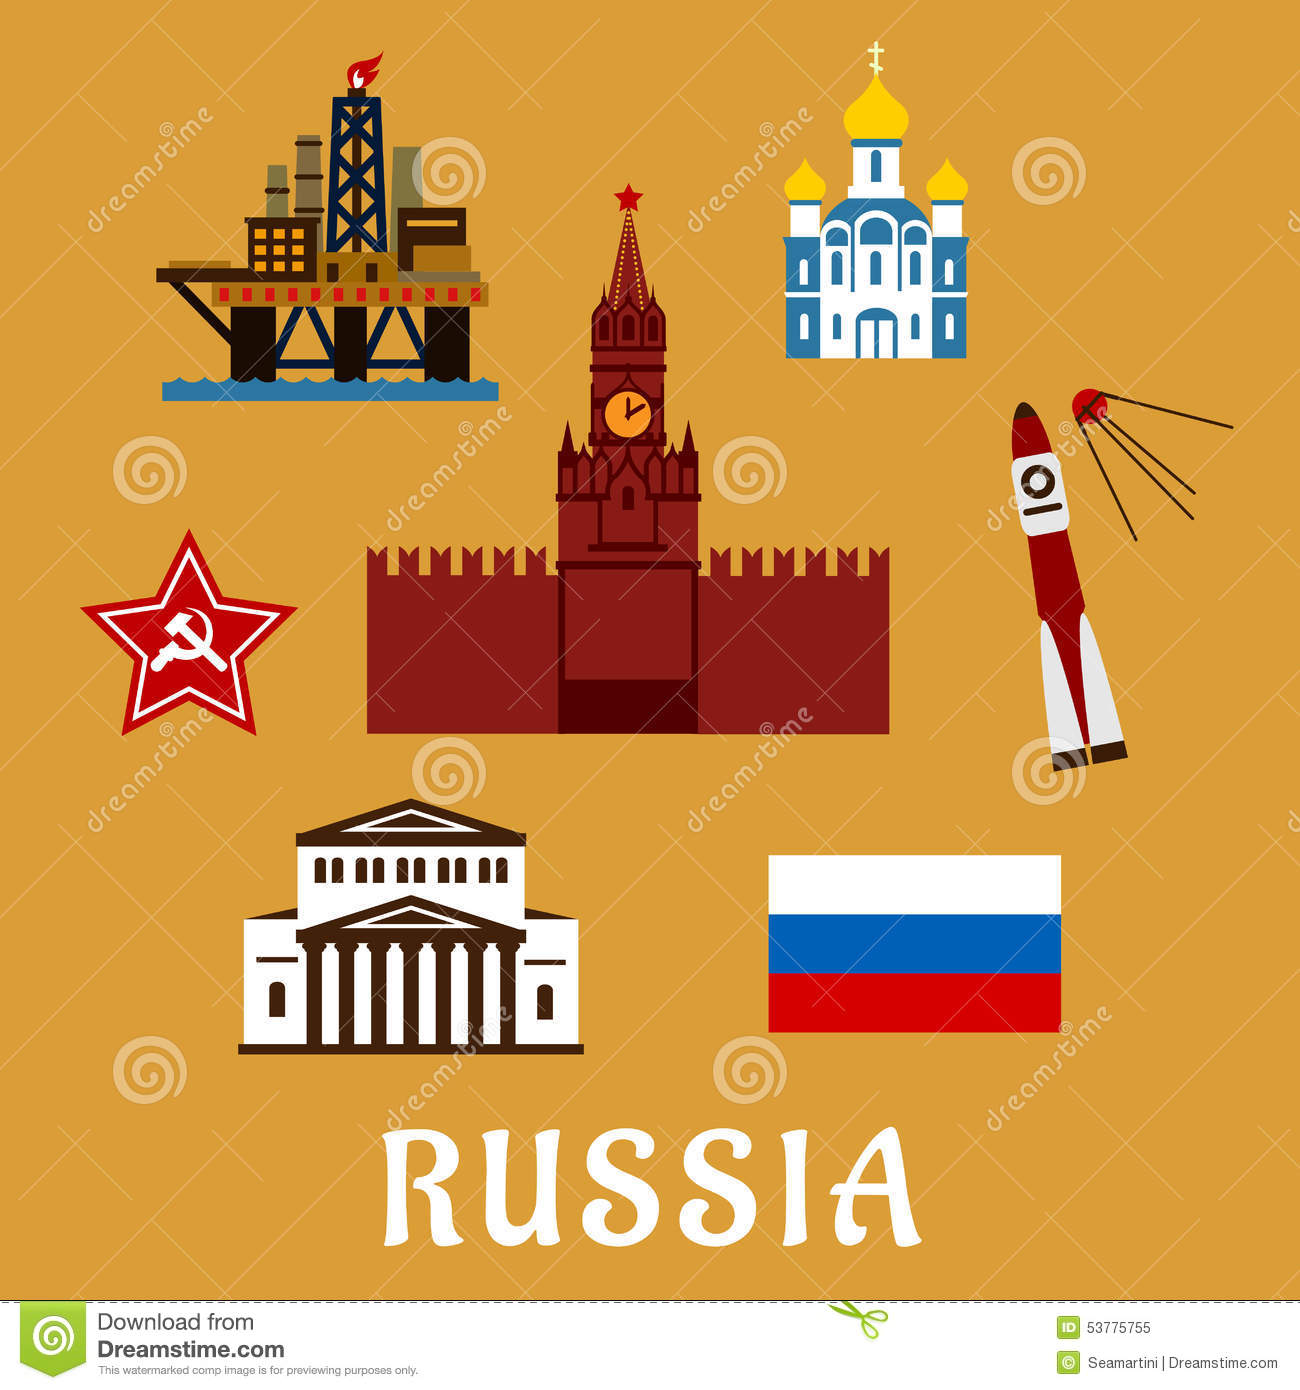 Russian cultural figures supported the Kremlin's policy in Crimea 12.03.2014